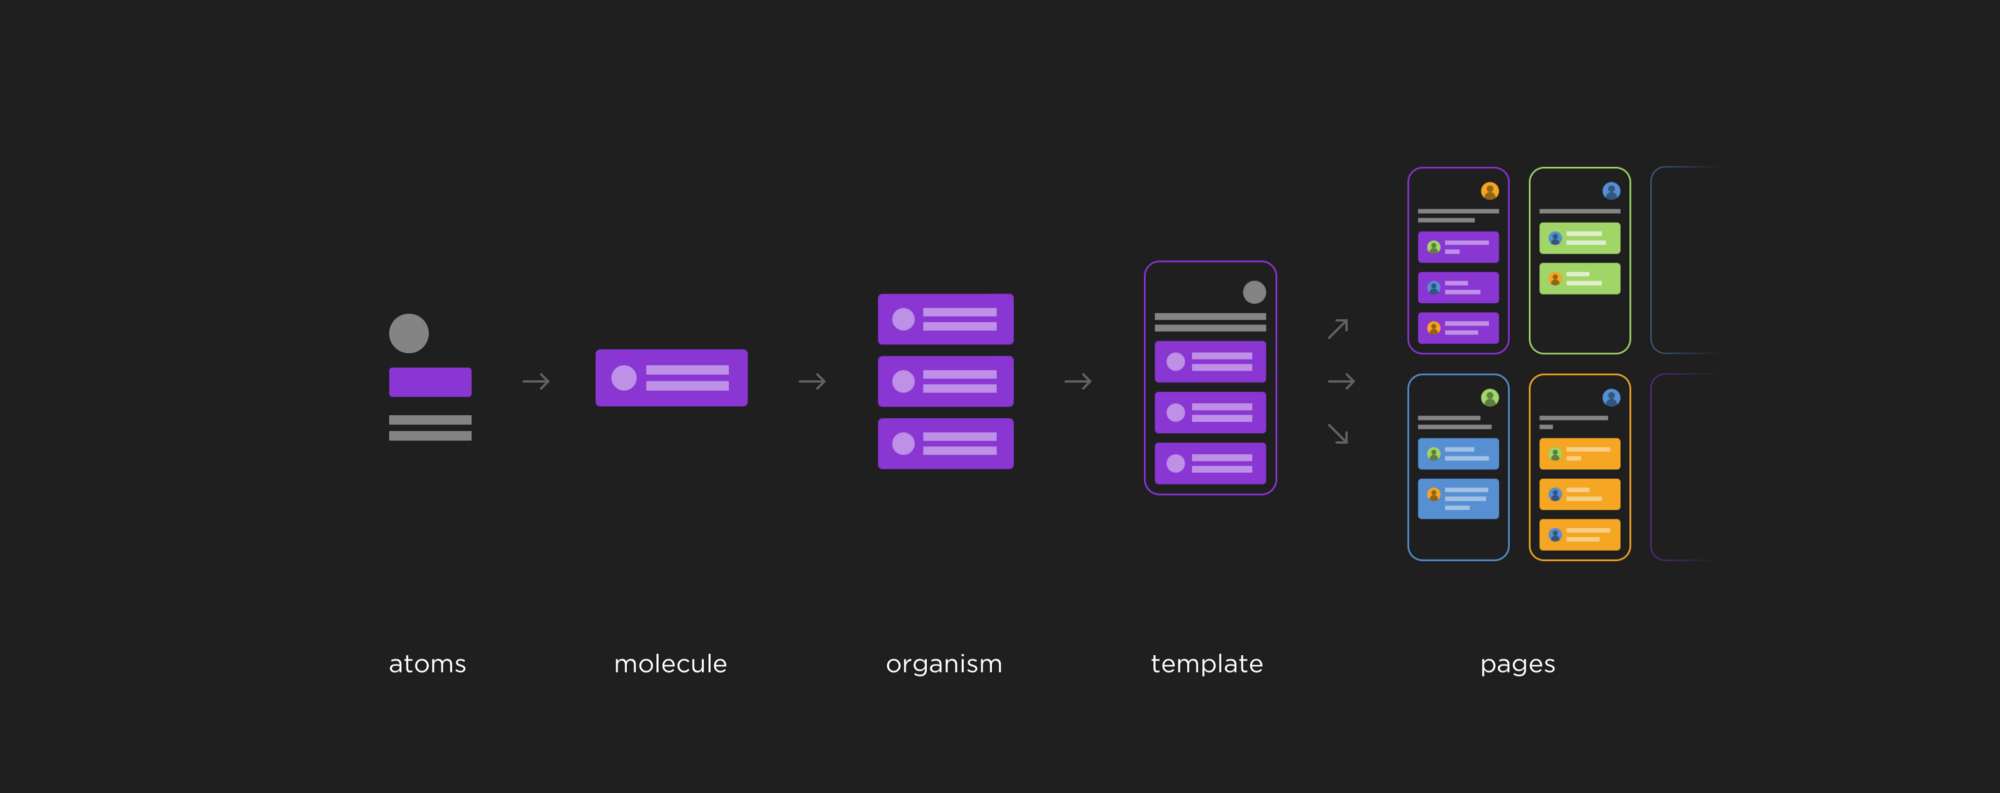 Building Design Systems with Atomic Design - Muzli - Design Inspiration